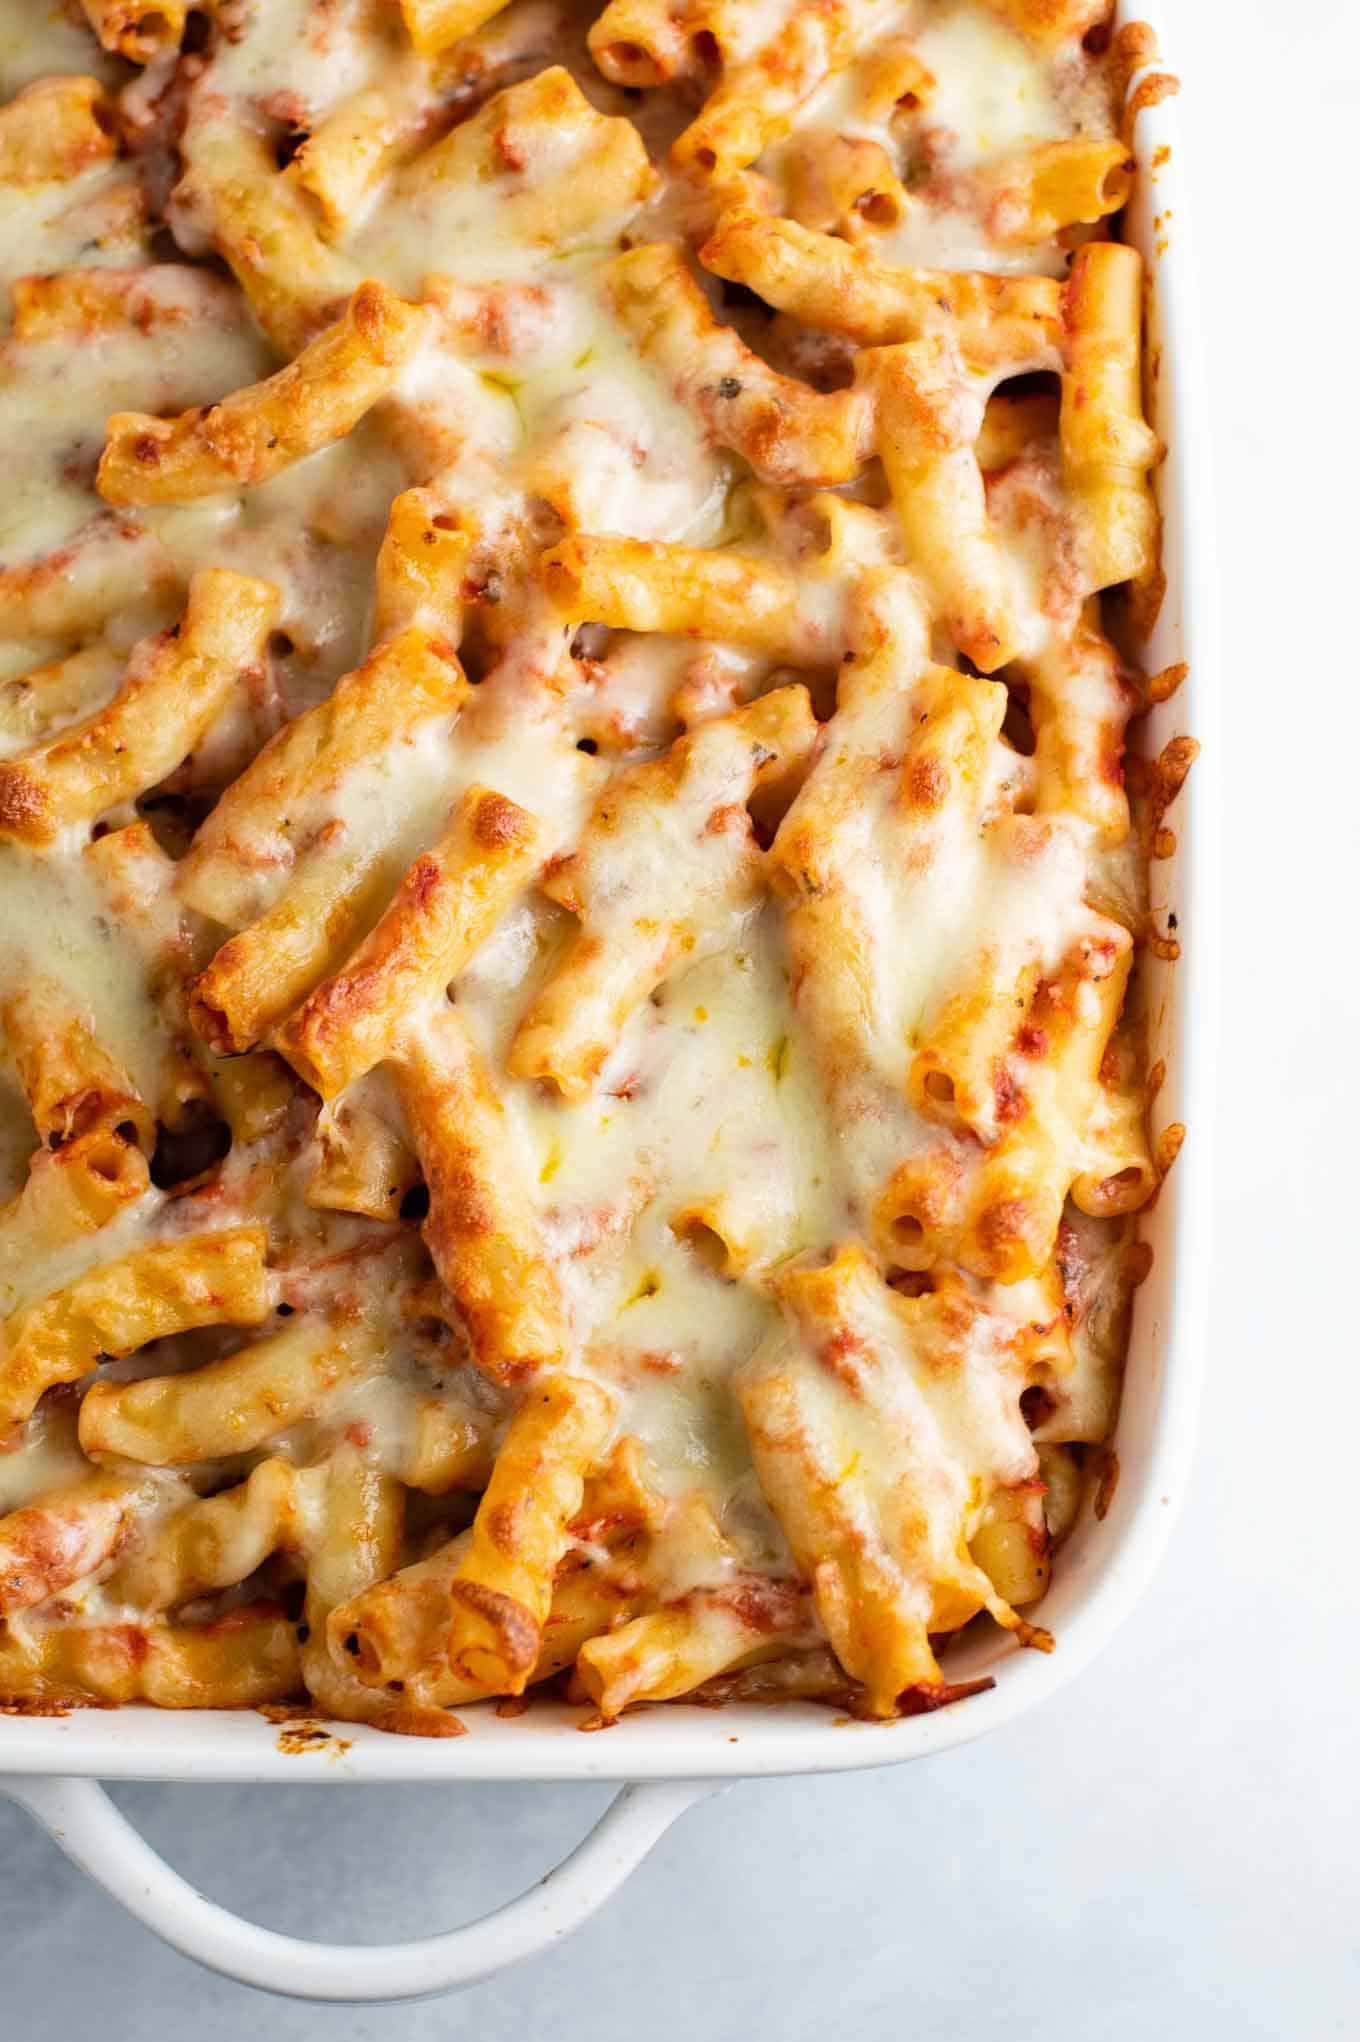 overhead shot of the baked ziti in the casserole dish